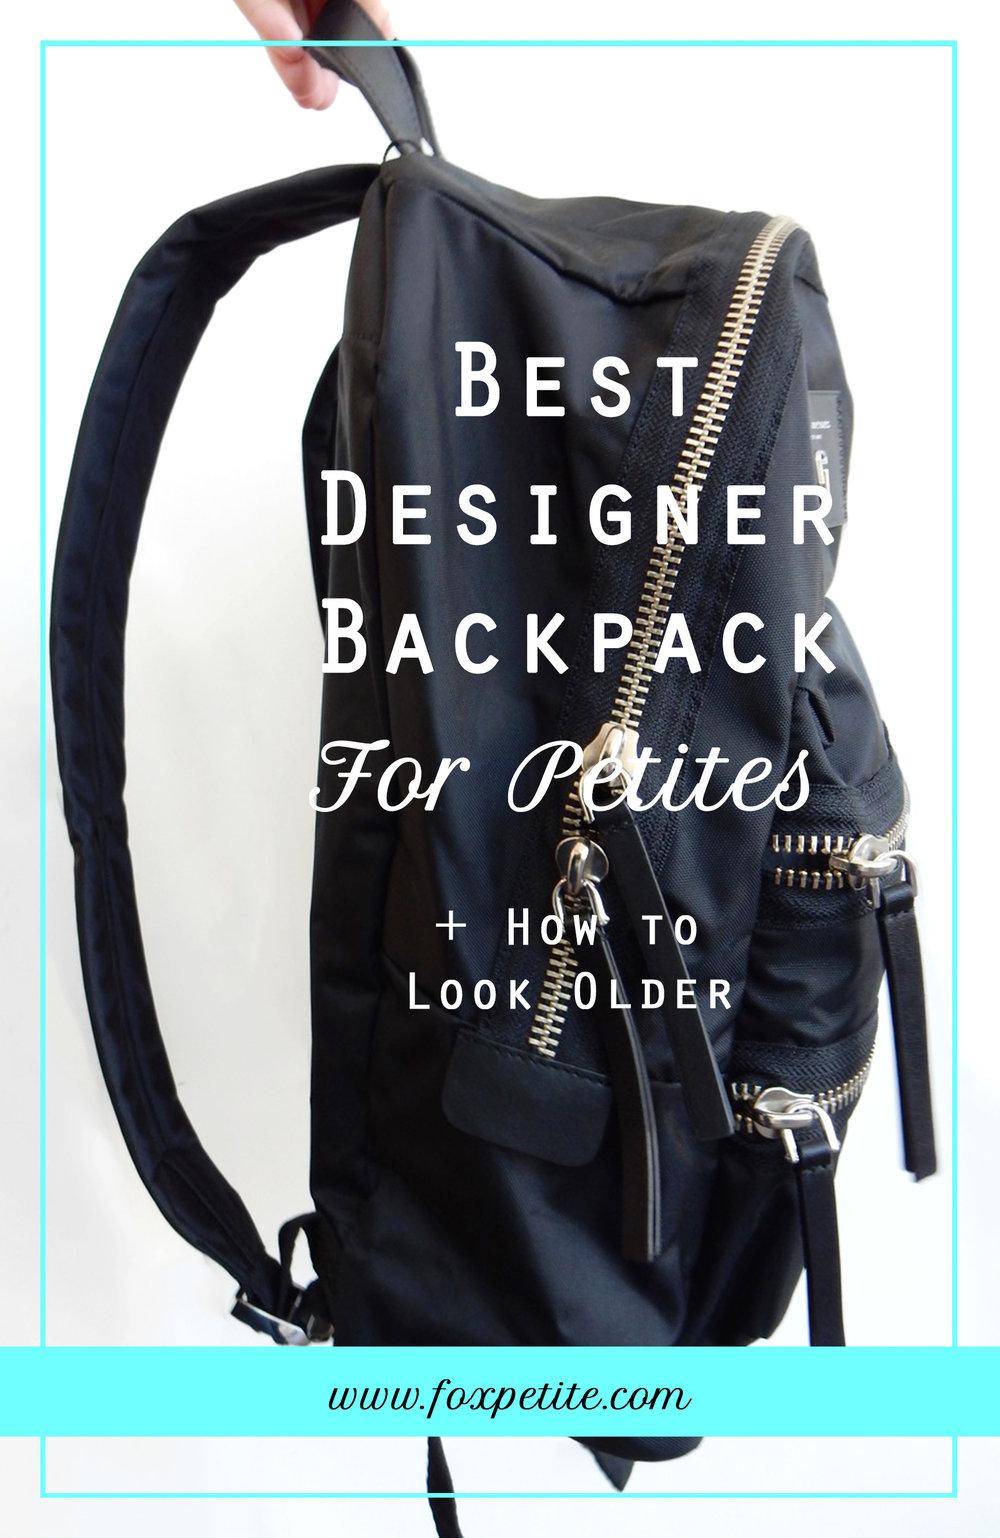 Best Designer Packback for Petites and Tips on How to look Older | Fox Petite Women's Fashion Blog | Marc Jacobs nylon bag review, petite friendly travel accessory, Nordstrom, petites style advice